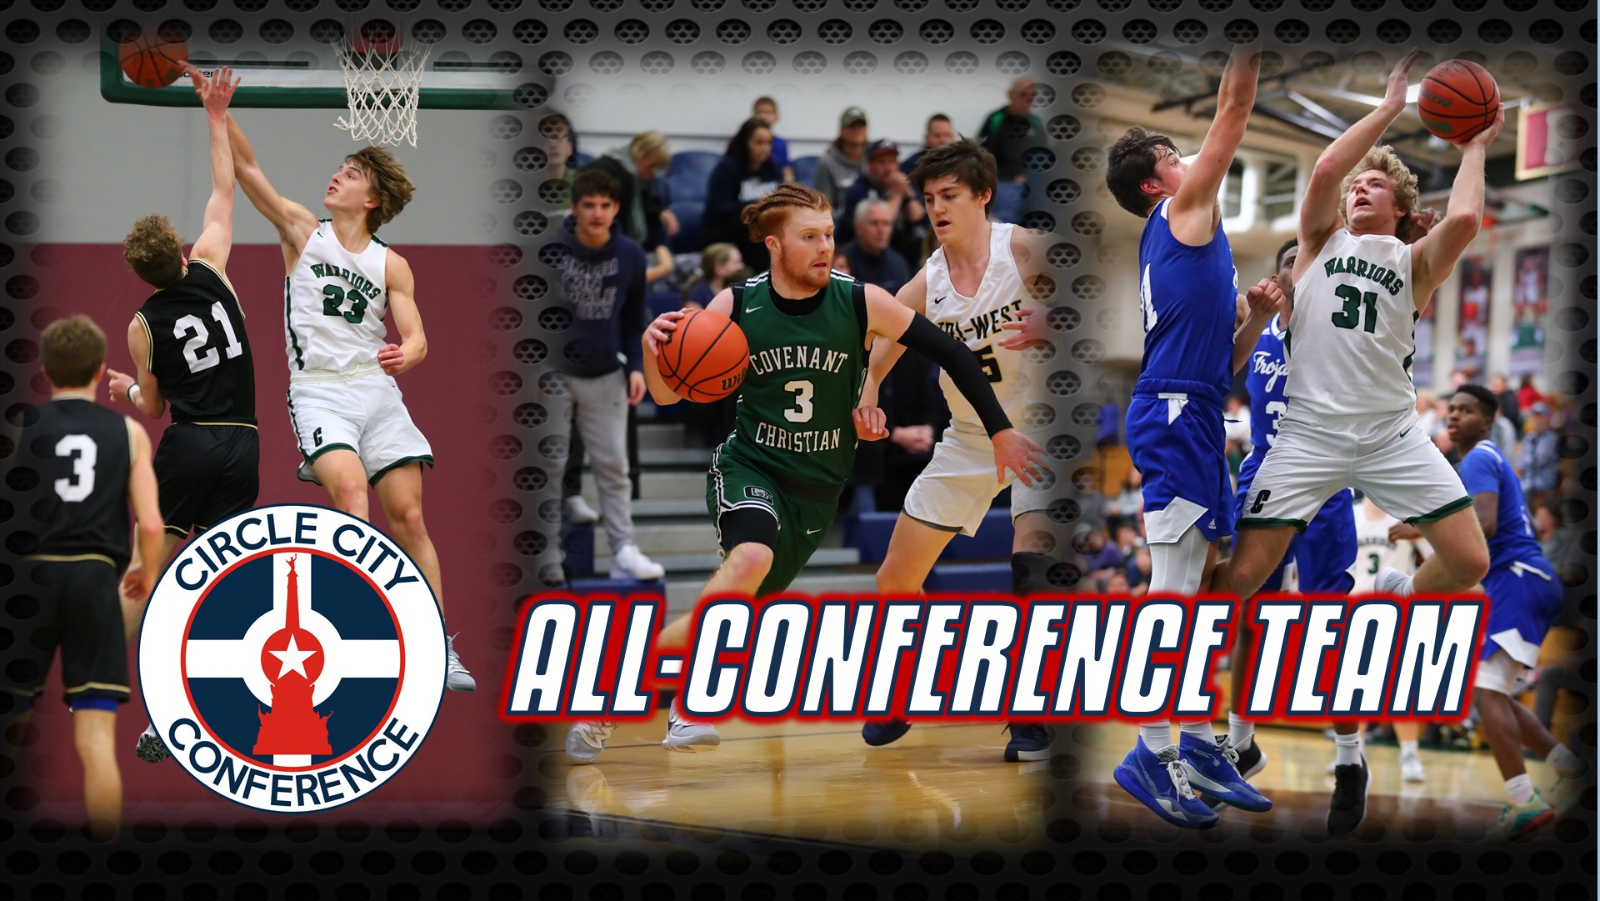 BBB Puts Three Players on All-Conference Team